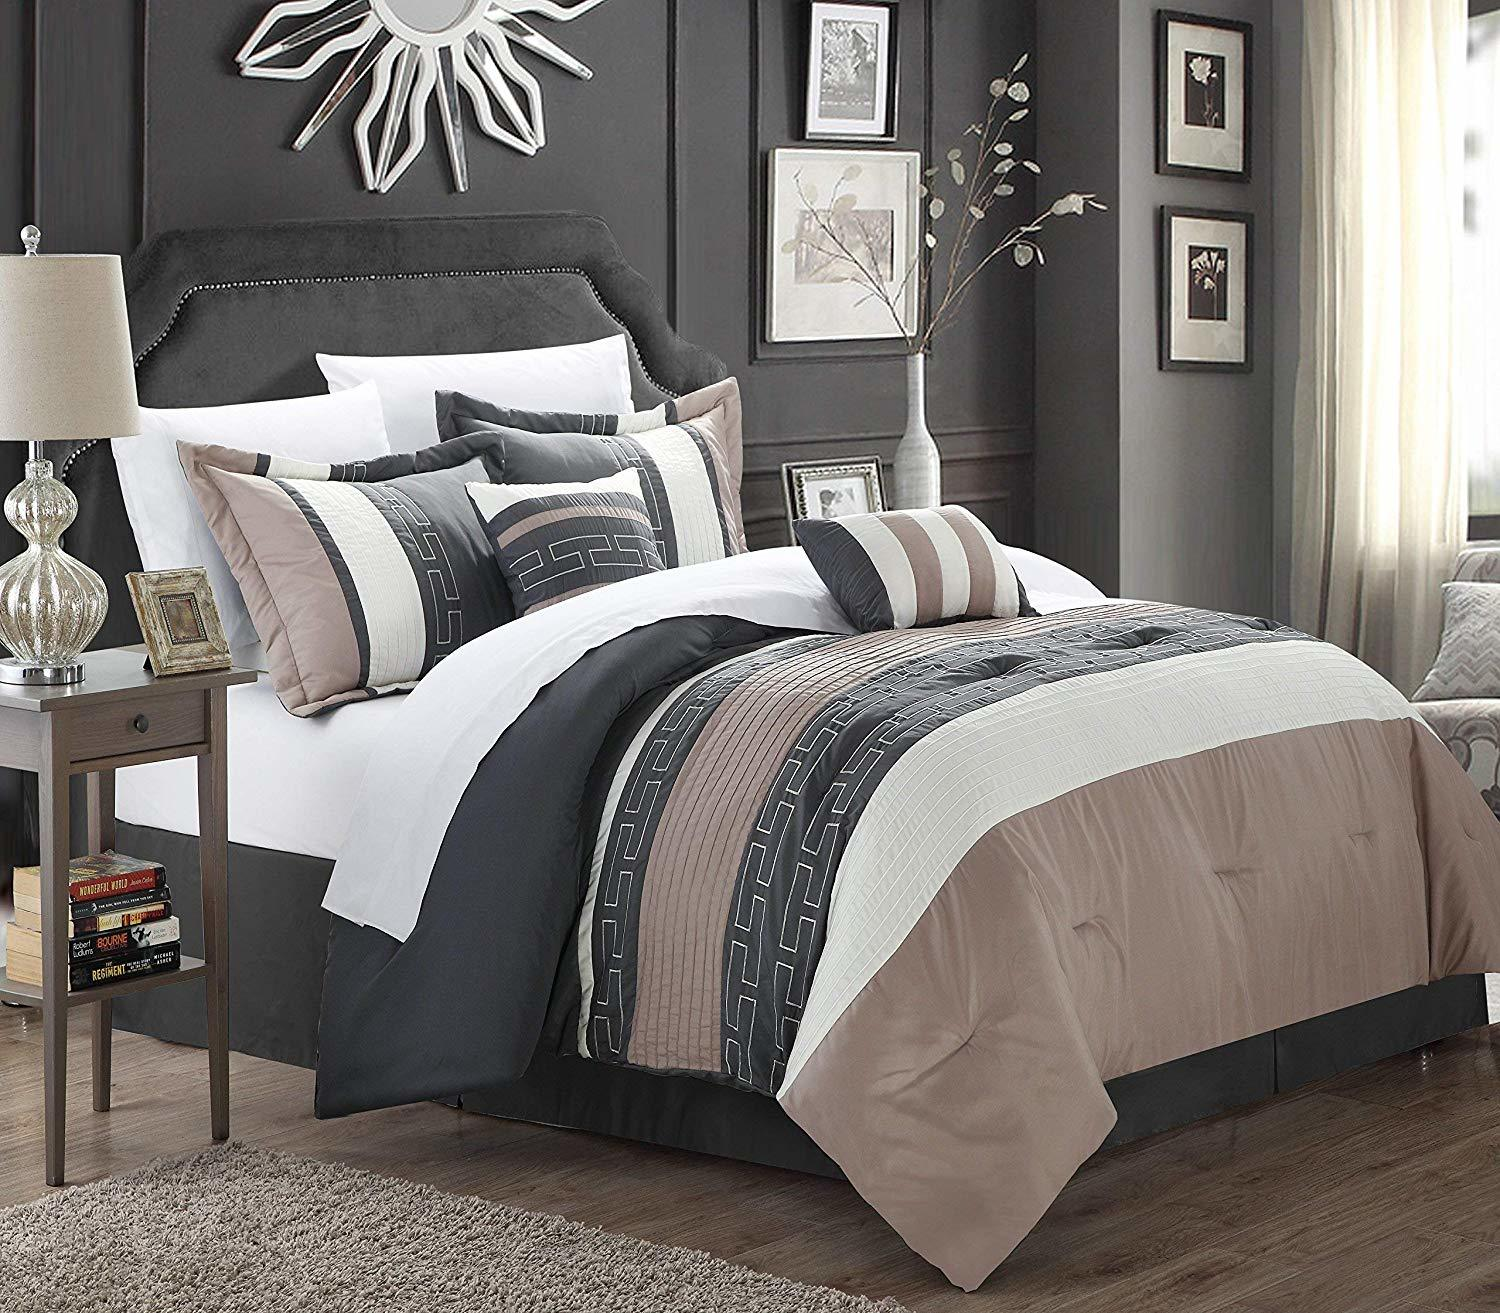 Chic Home 6 Piece Comforter Set